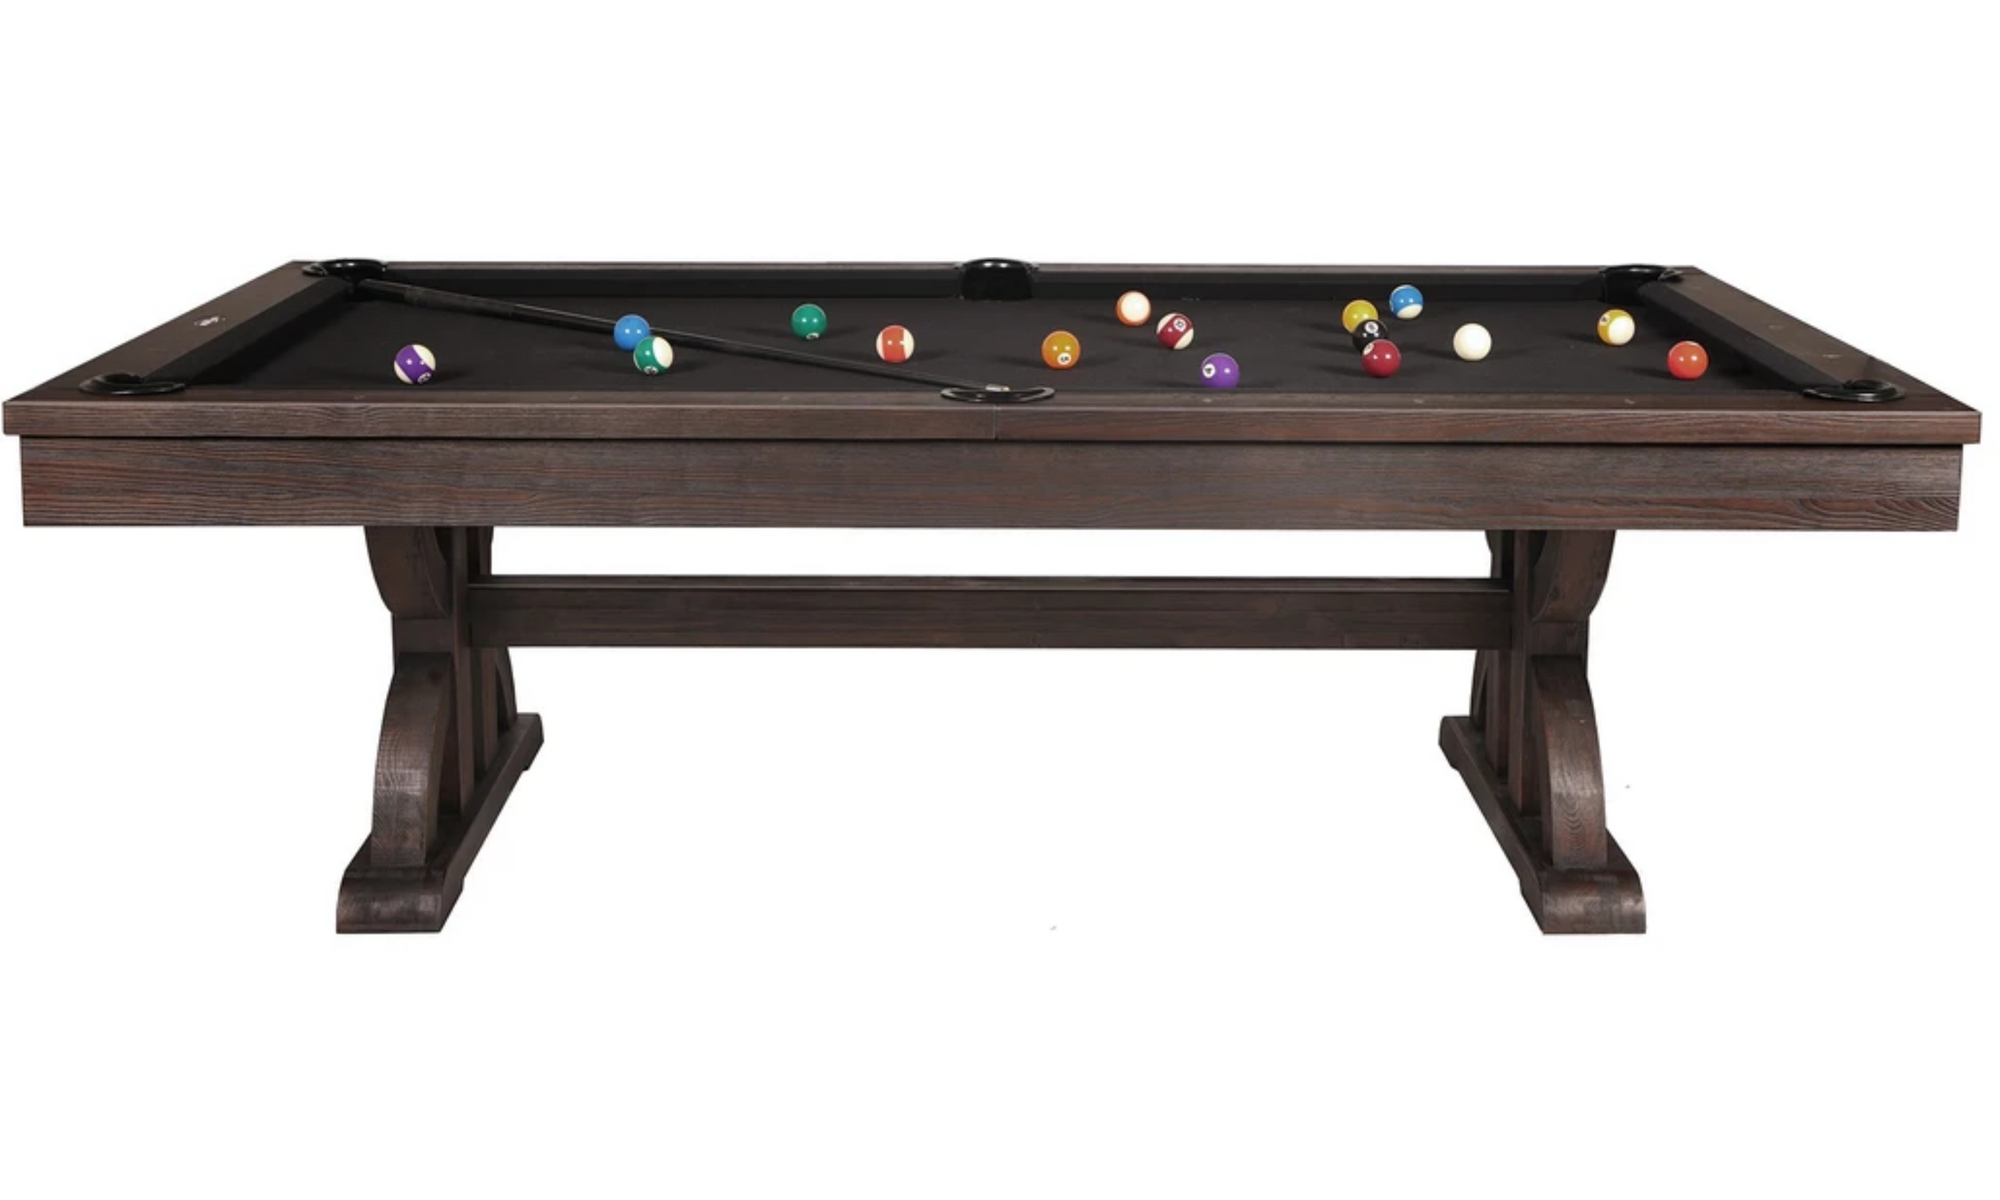 THE DRUMMOND POOL TABLE